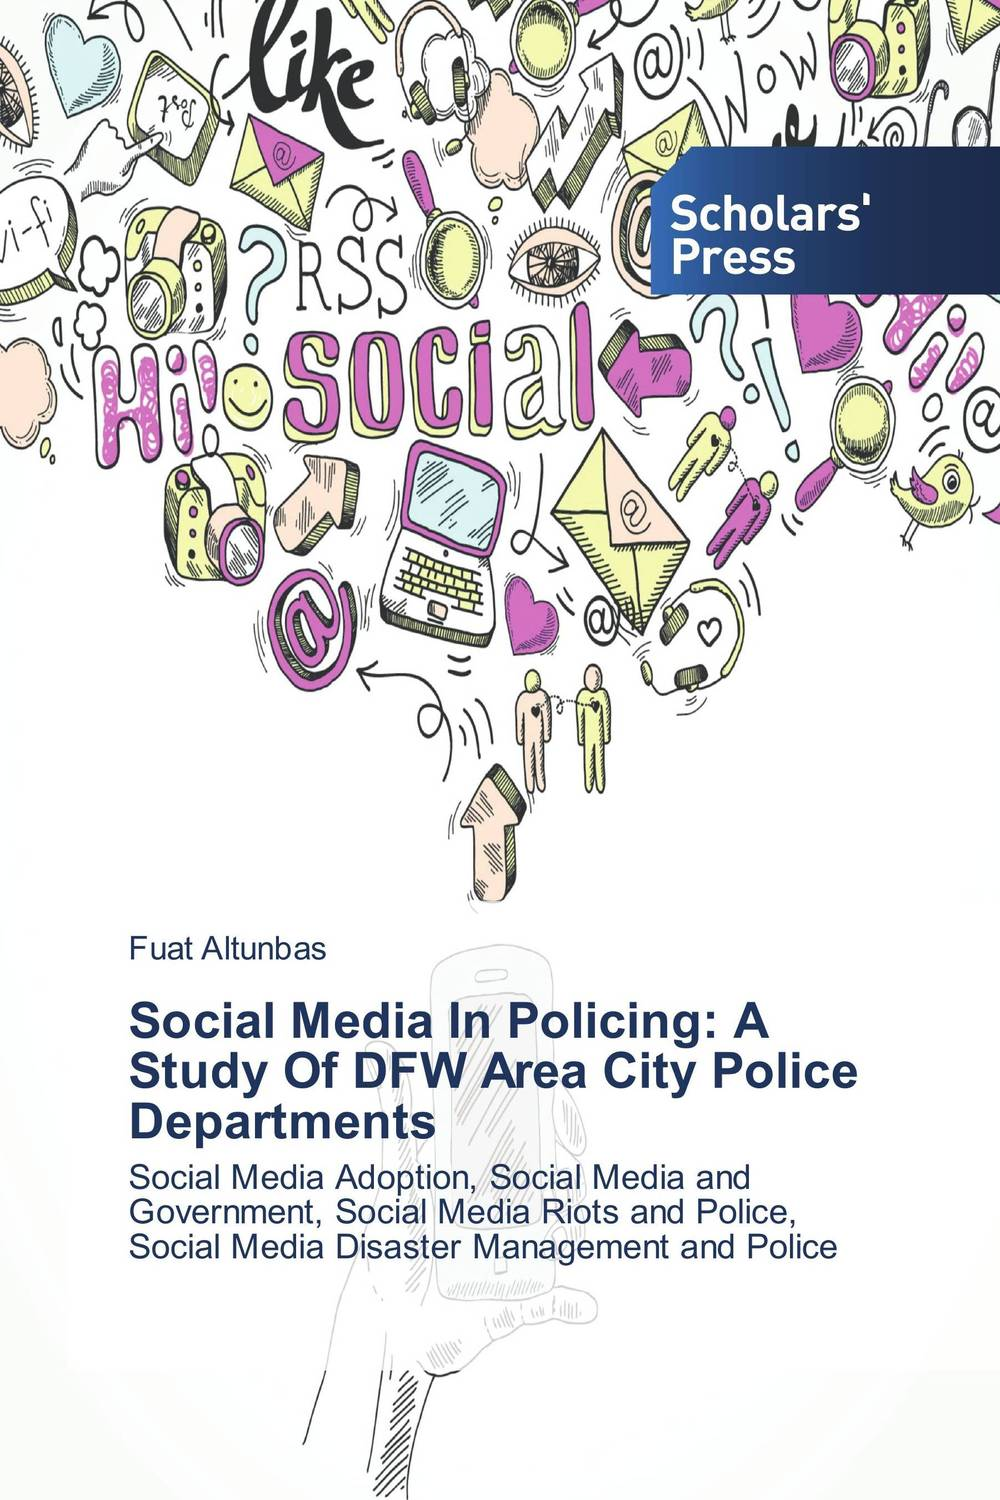 Social Media In Policing: A Study Of DFW Area City Police Departments the rules of modern policing 1973 edition